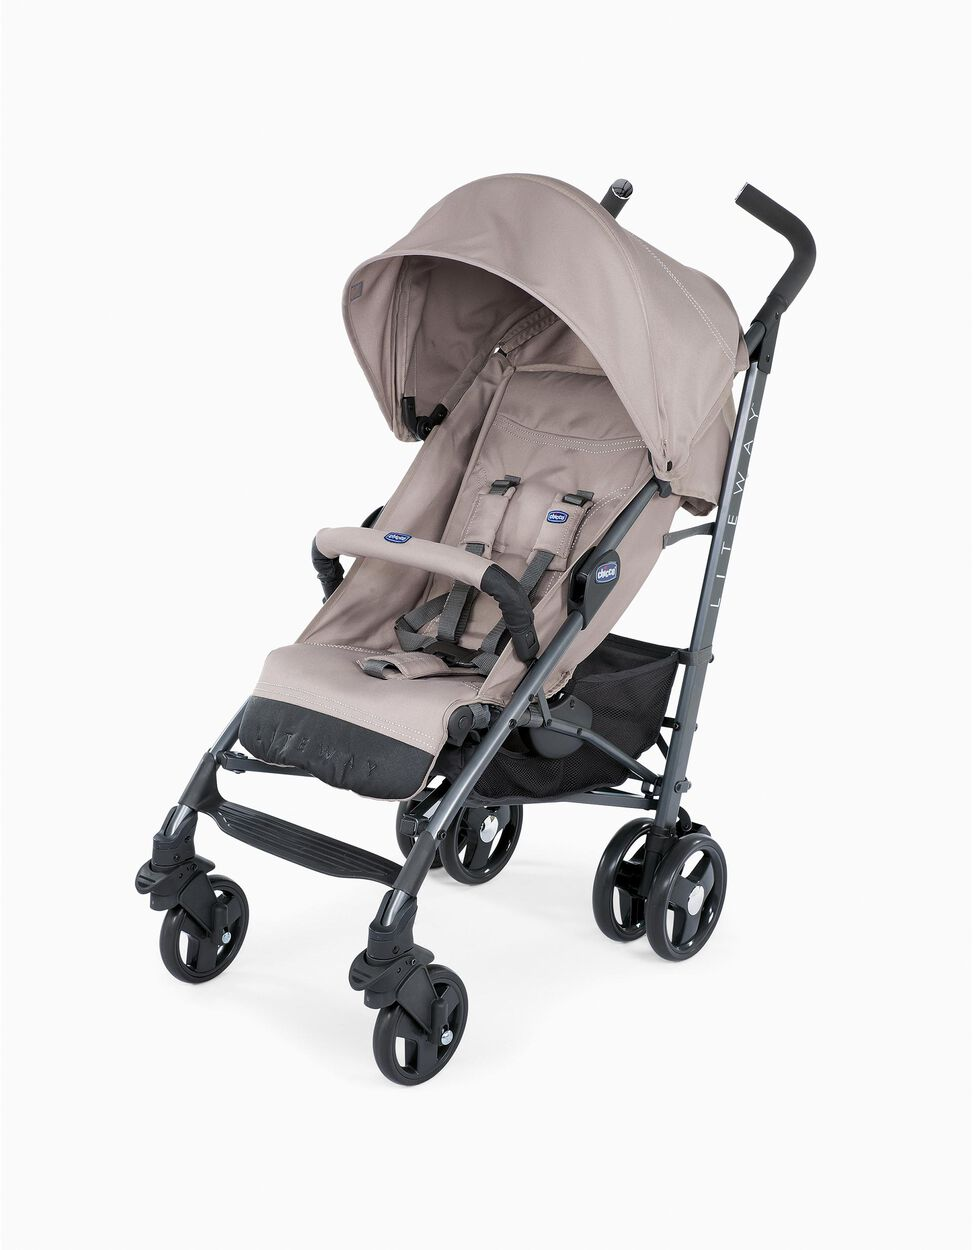 Lite Way 3 Pushchair by Chicco, Dark Beige